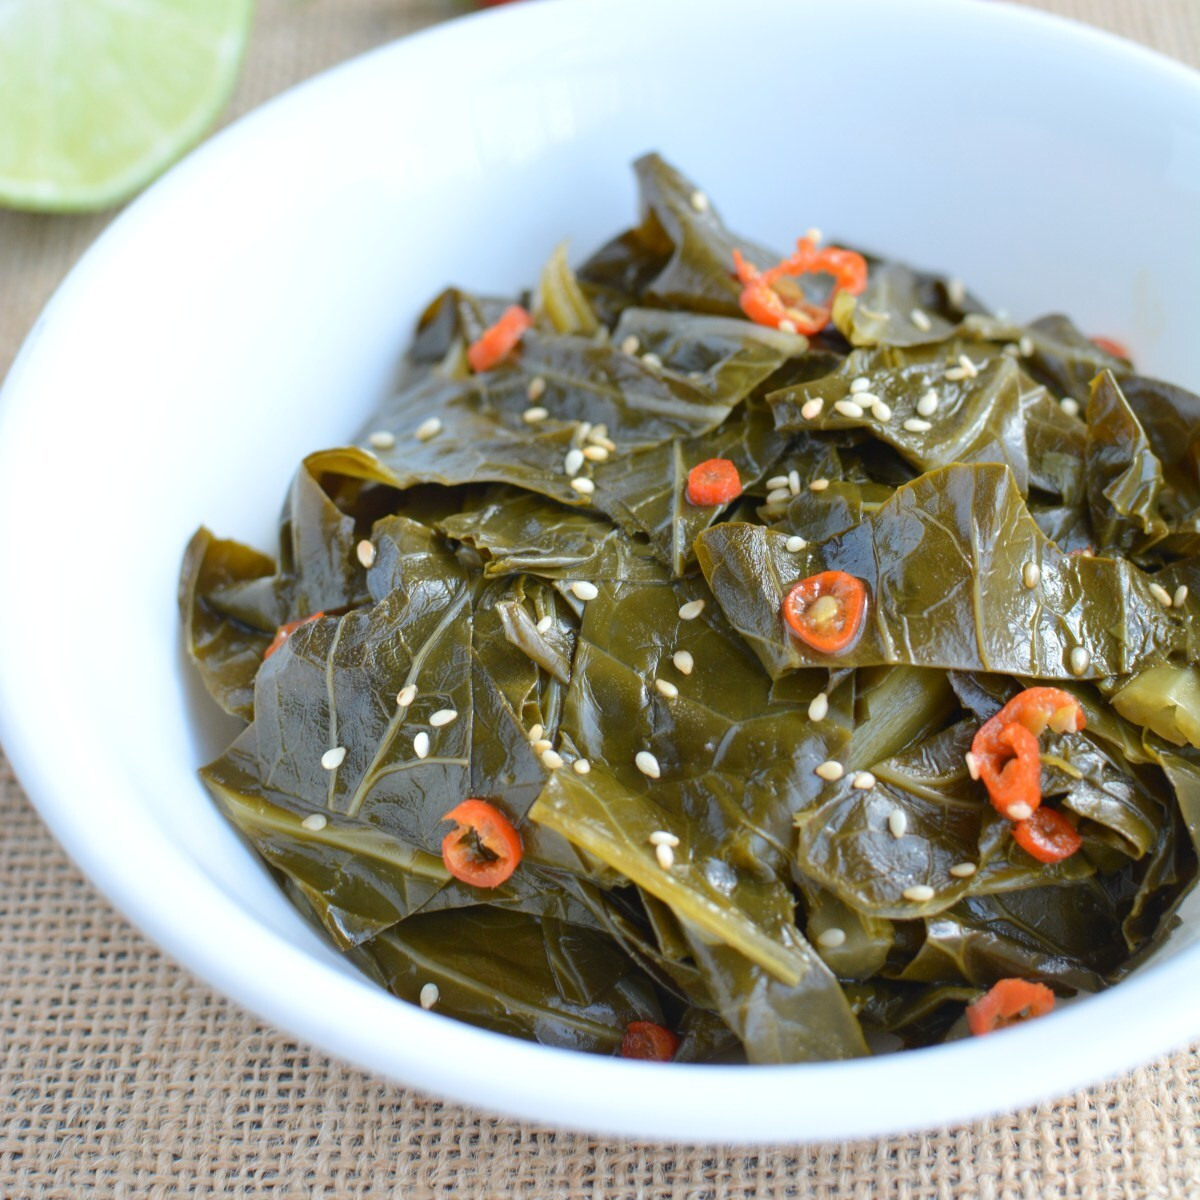 Chili Lime Collard Greens